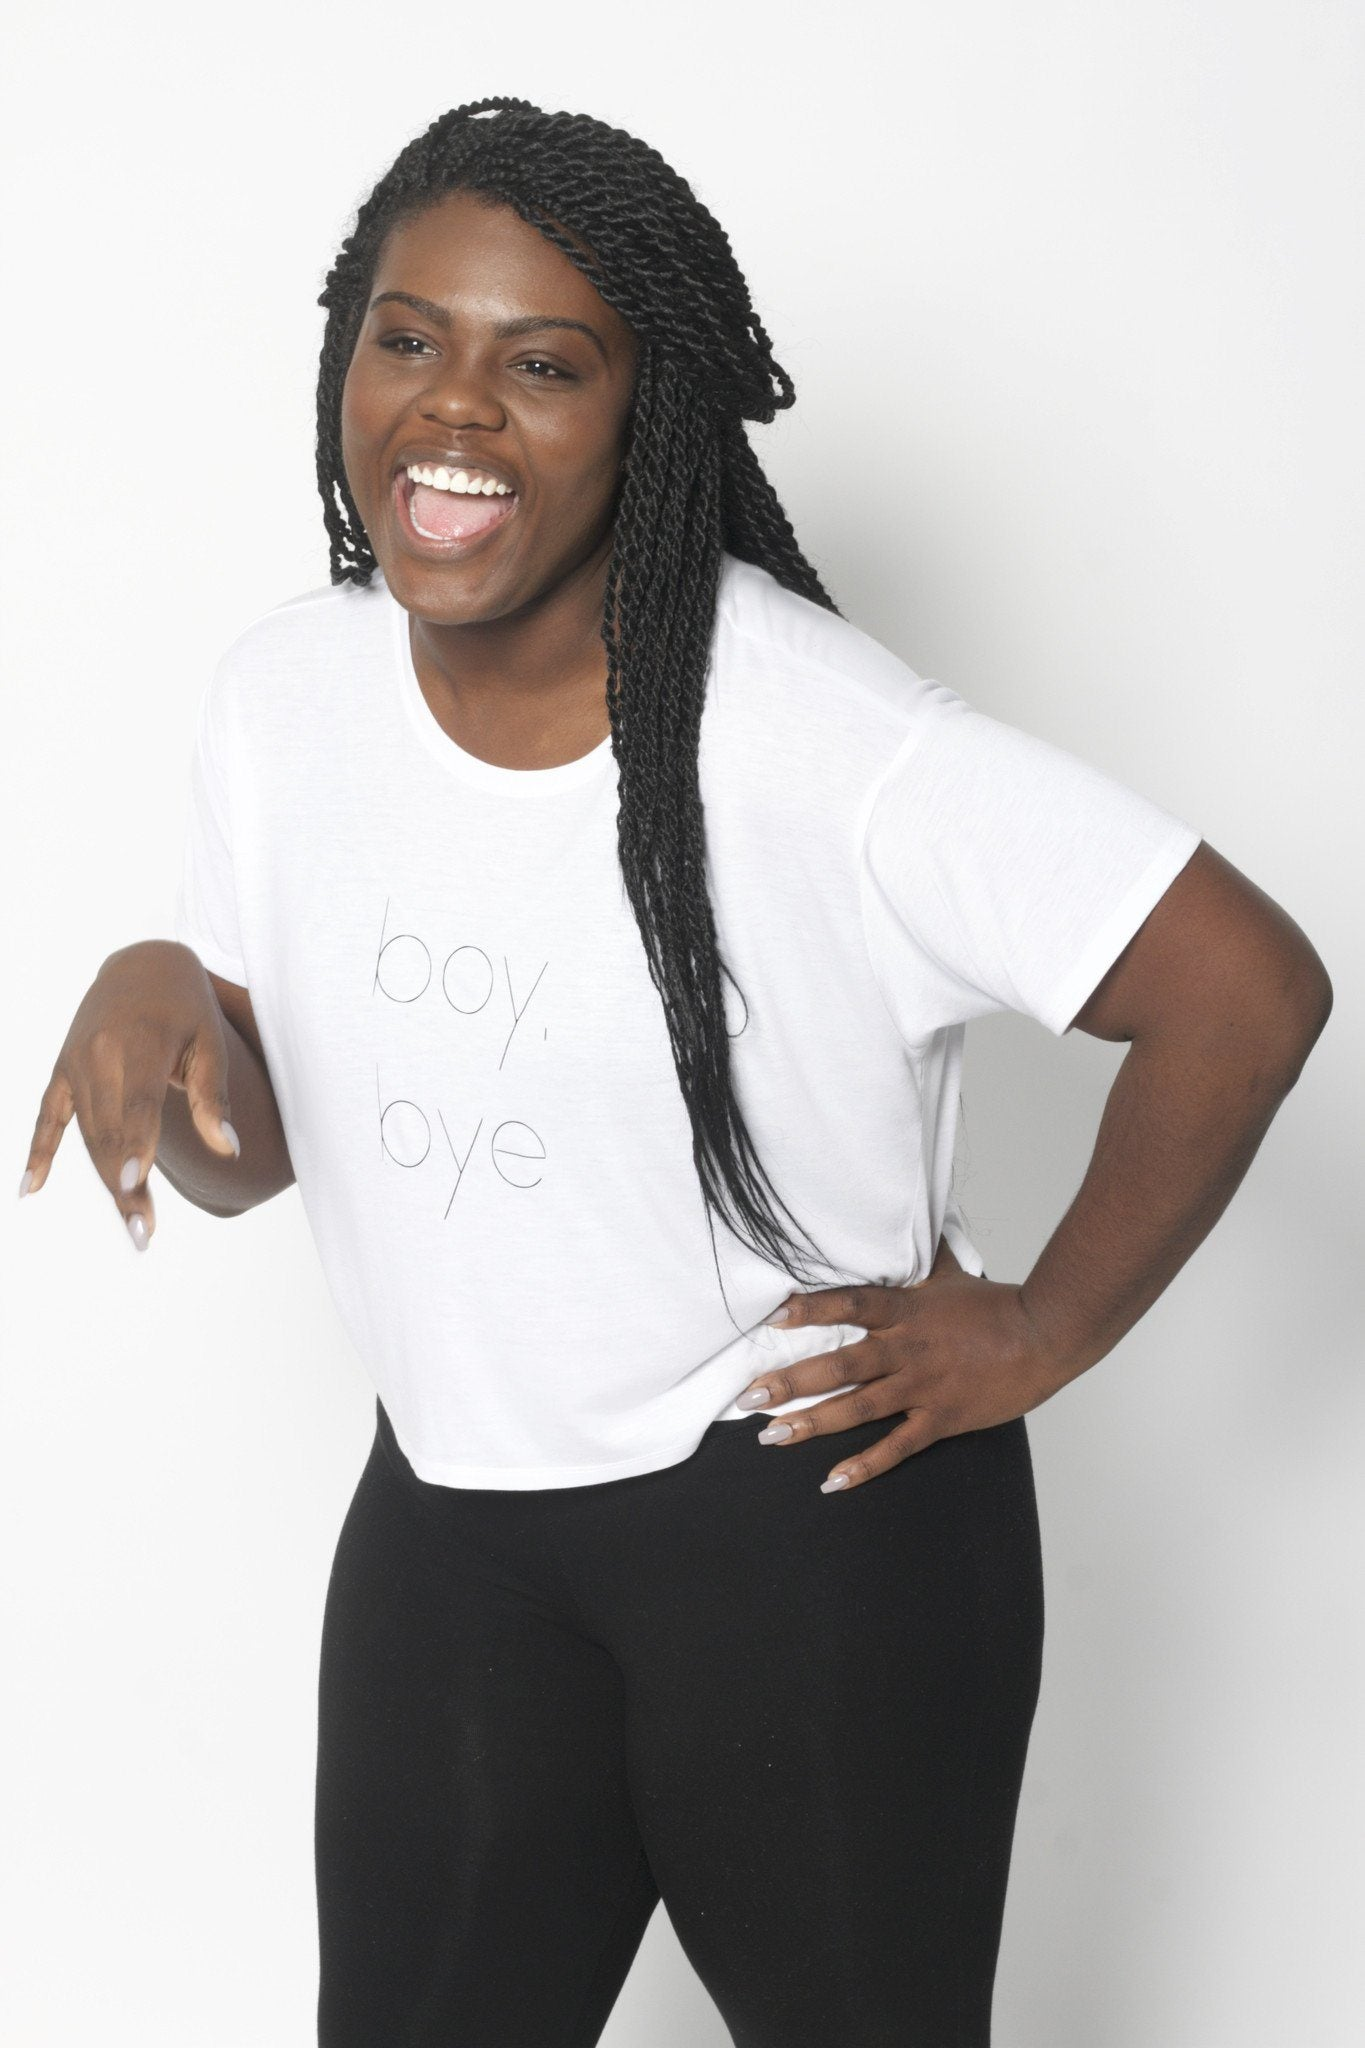 Boy Bye Boxy Tee - Vibrate Higher